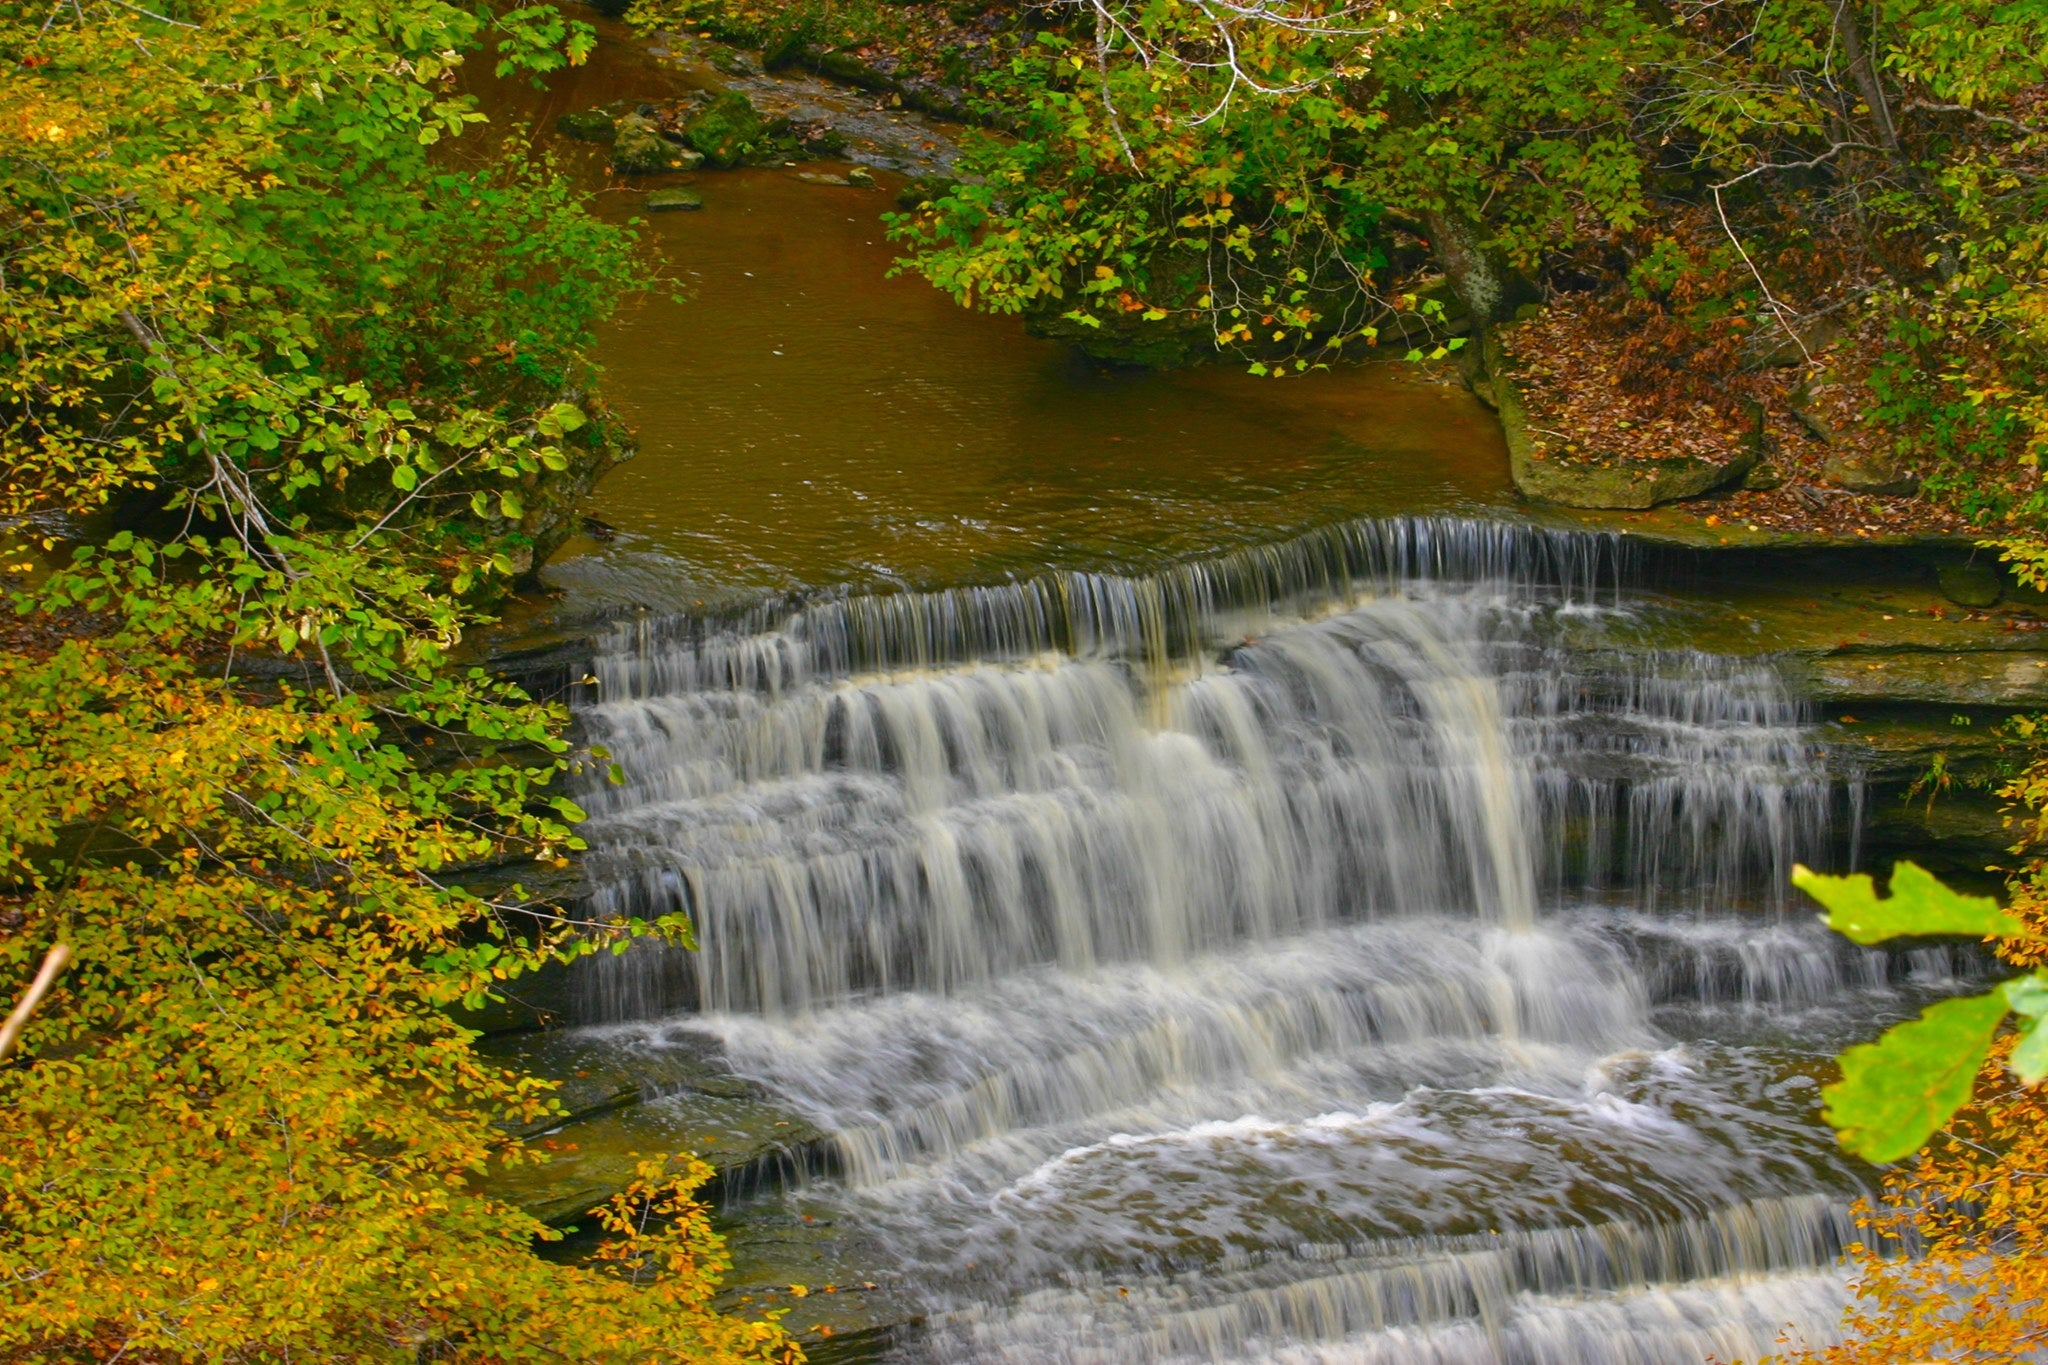 cliffy falls state park along the Indiana Birding Trail